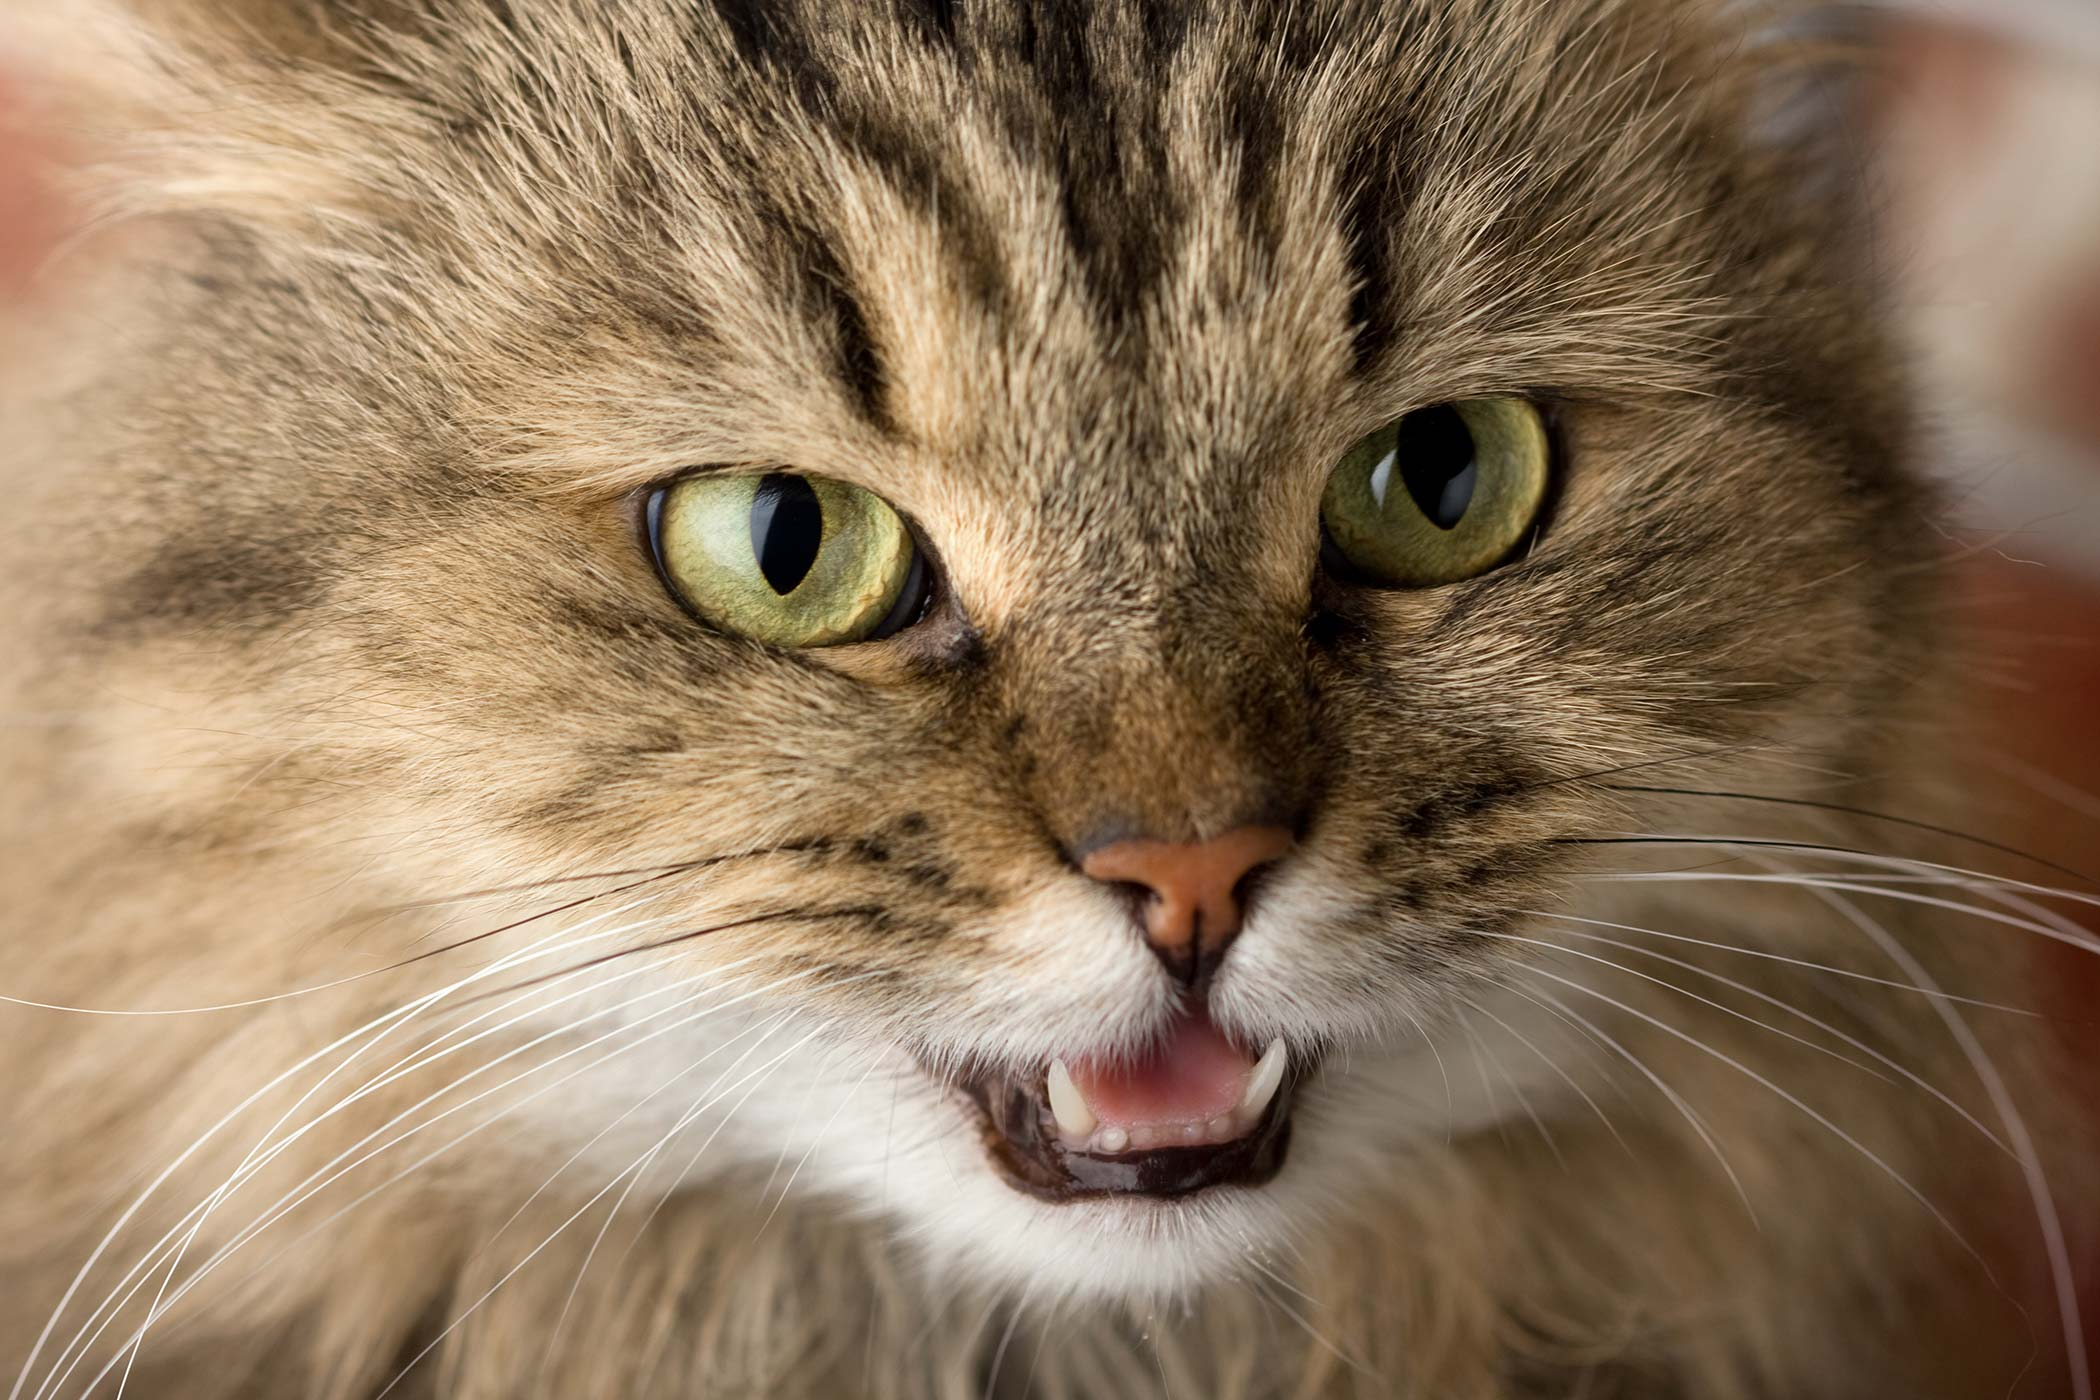 Enlarged Gums in Cats